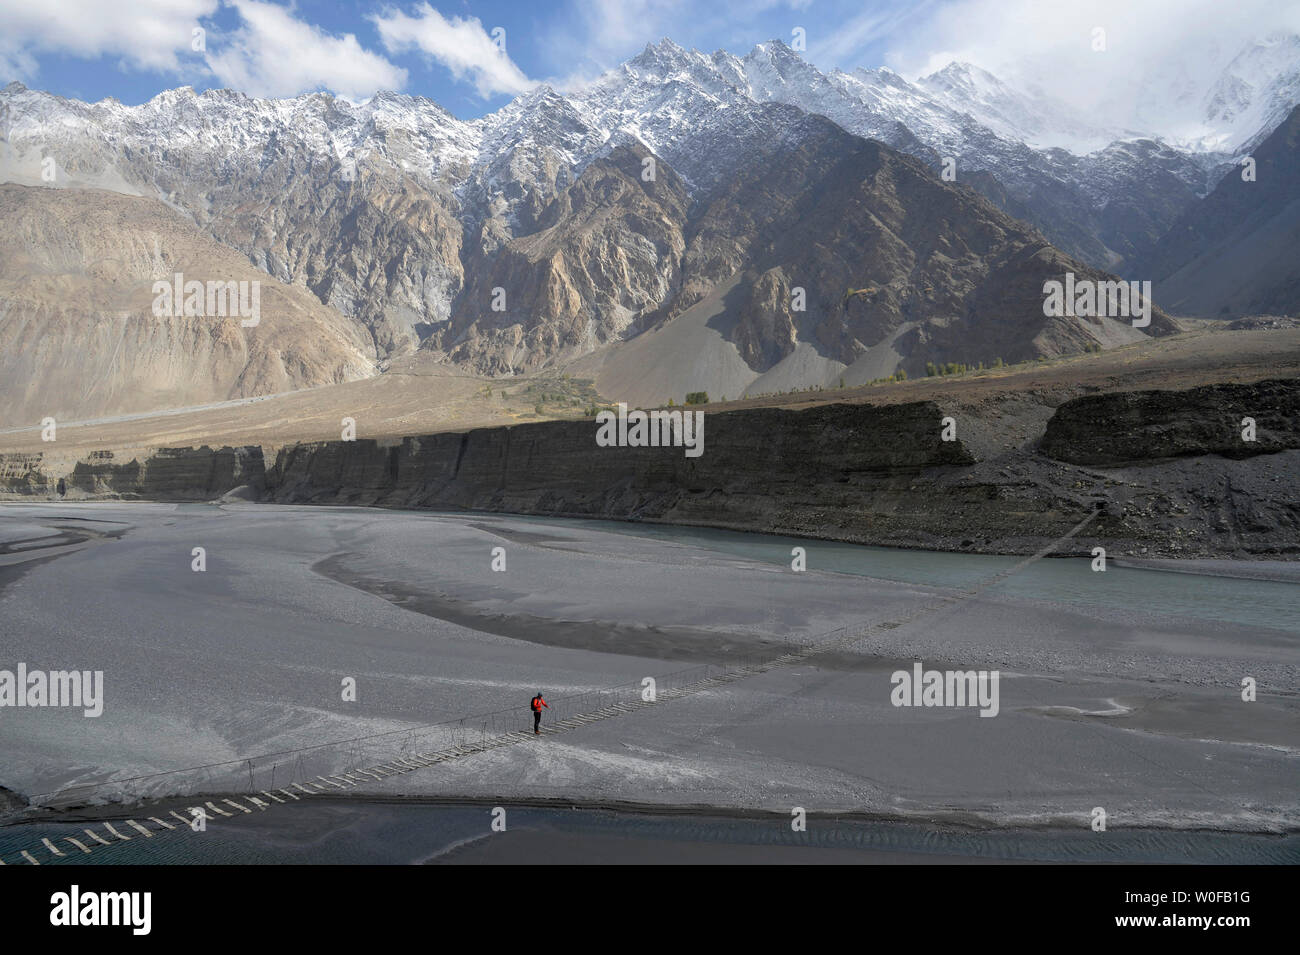 Pakistan, Gilgit Baltista area, Passu, a man is crossing the Hunza river on the Zadabad suspension bridge in front of the Karakoram mountains - Stock Image